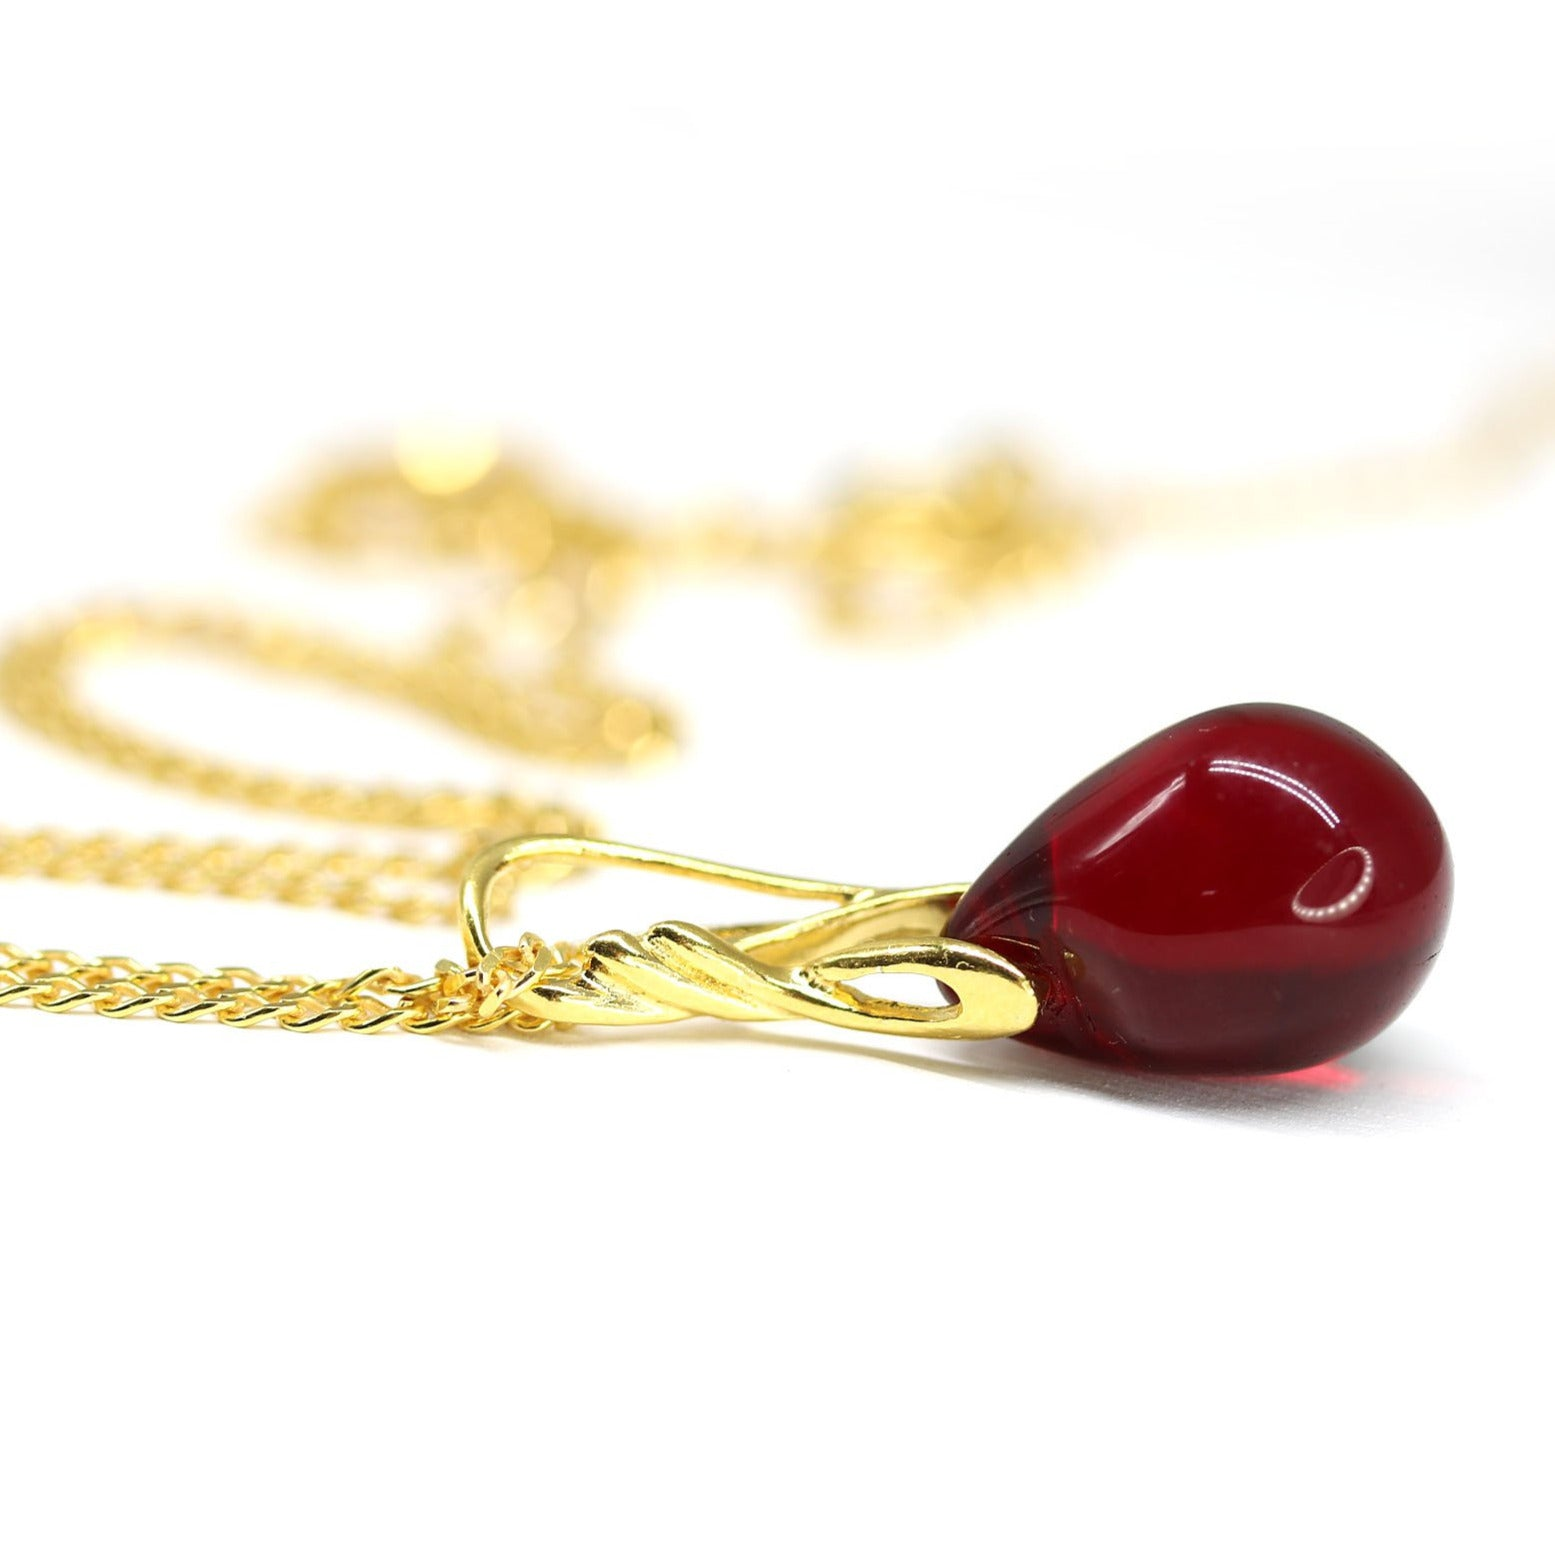 Dark red drop glass pendant on golden coated chain